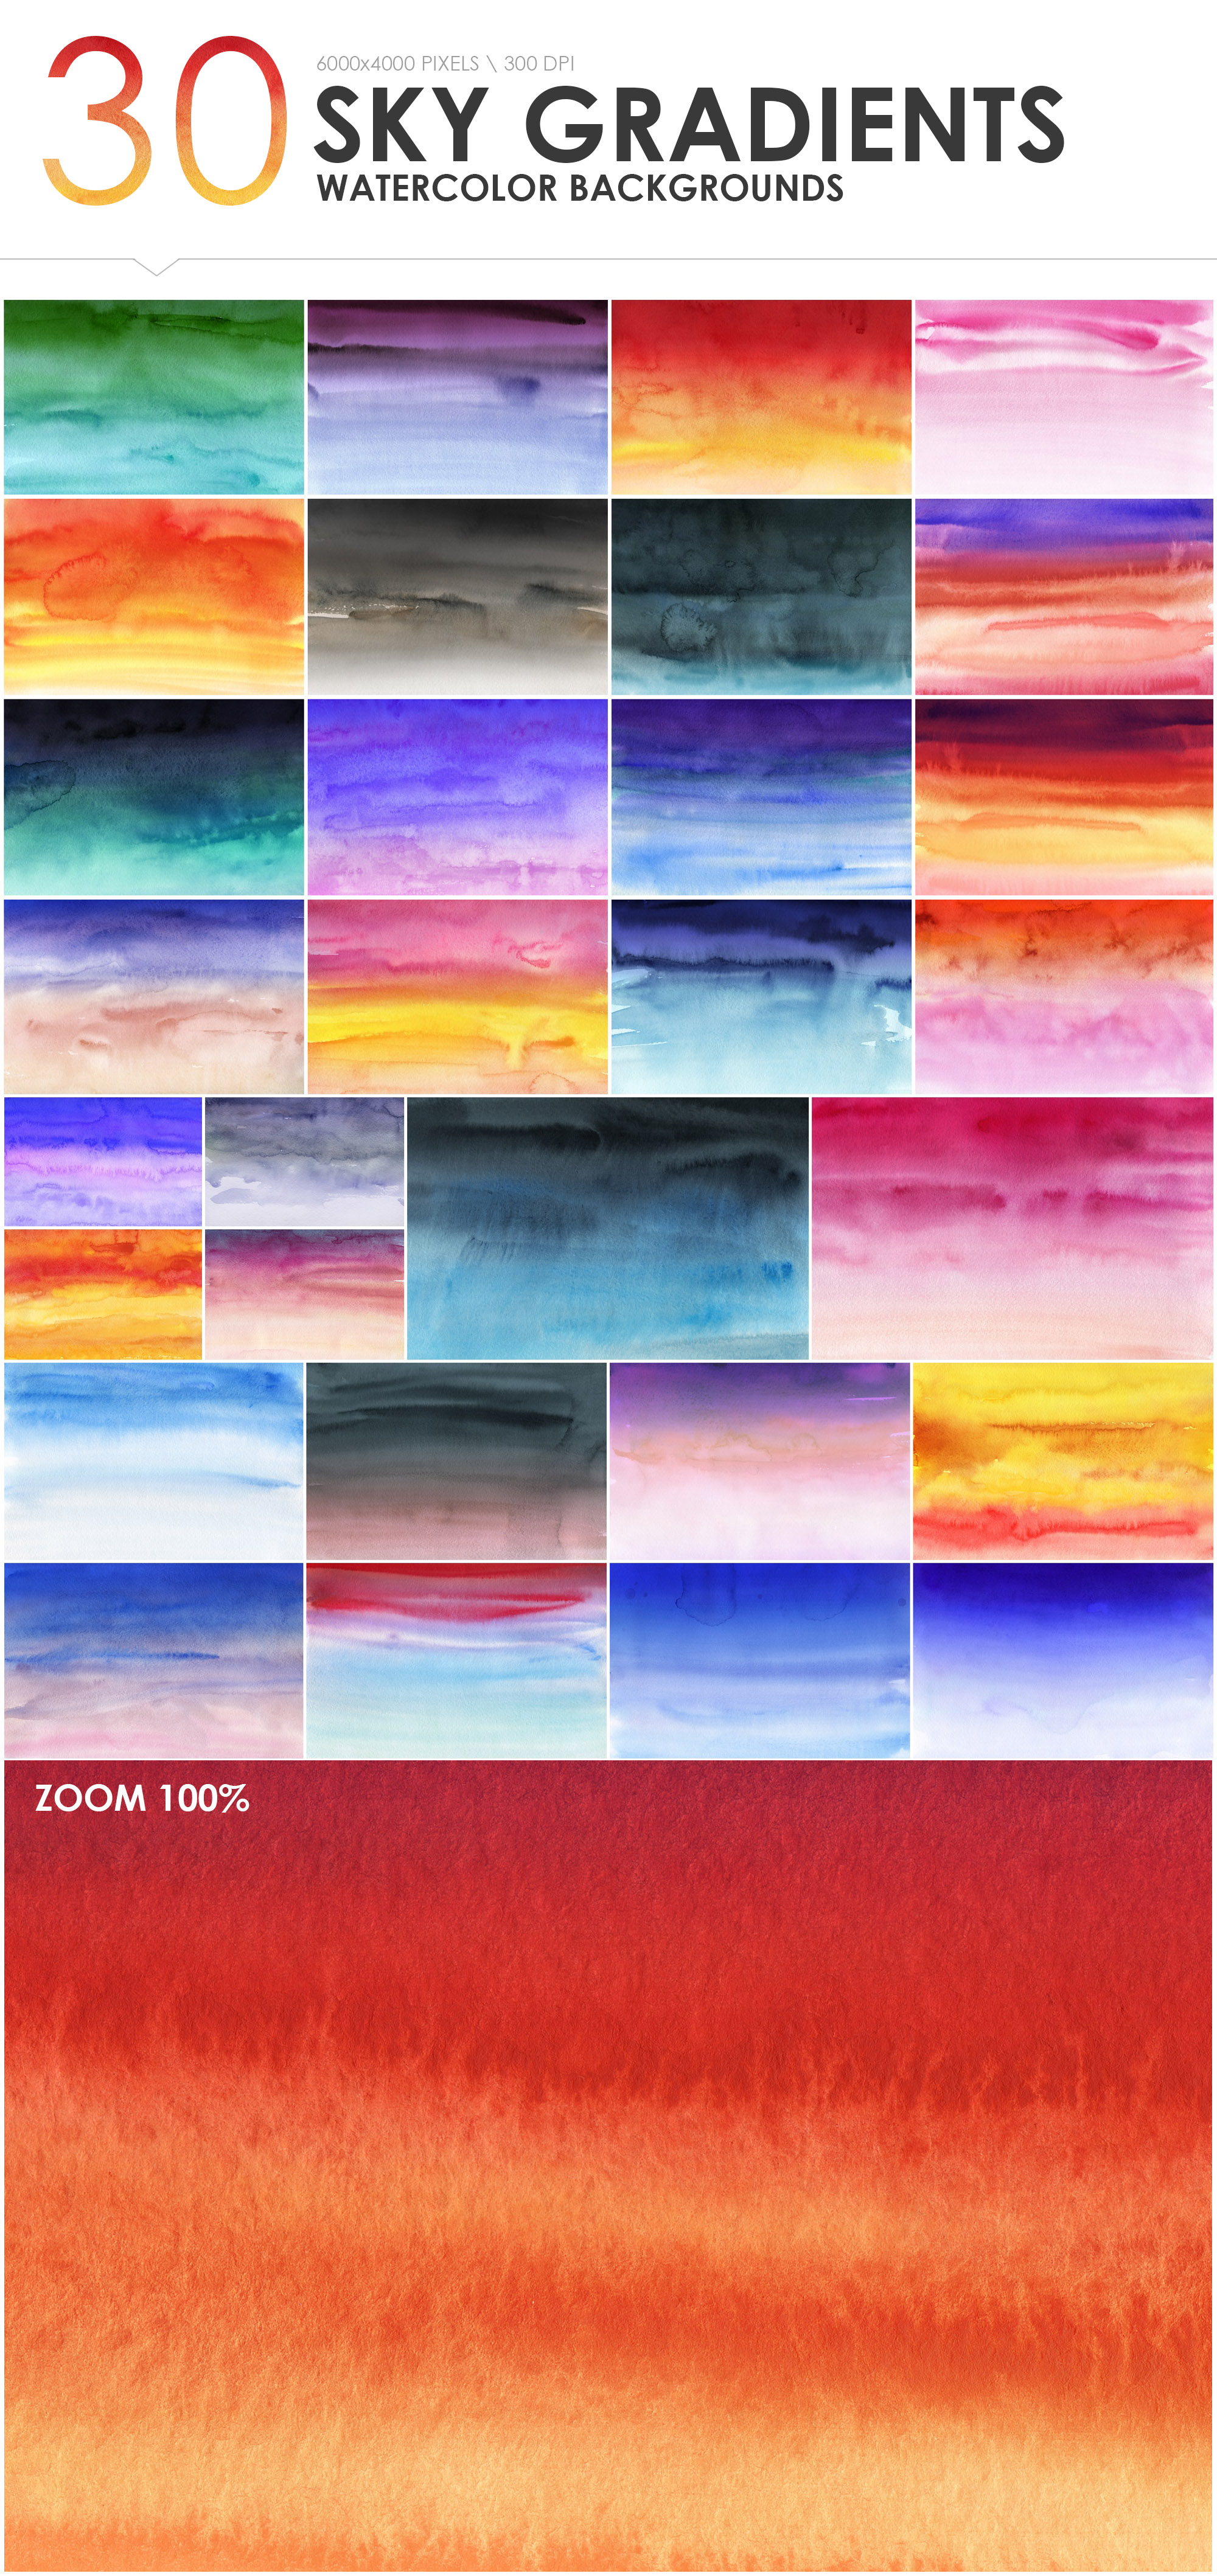 300 Diverse Watercolor Backgrounds example image 10